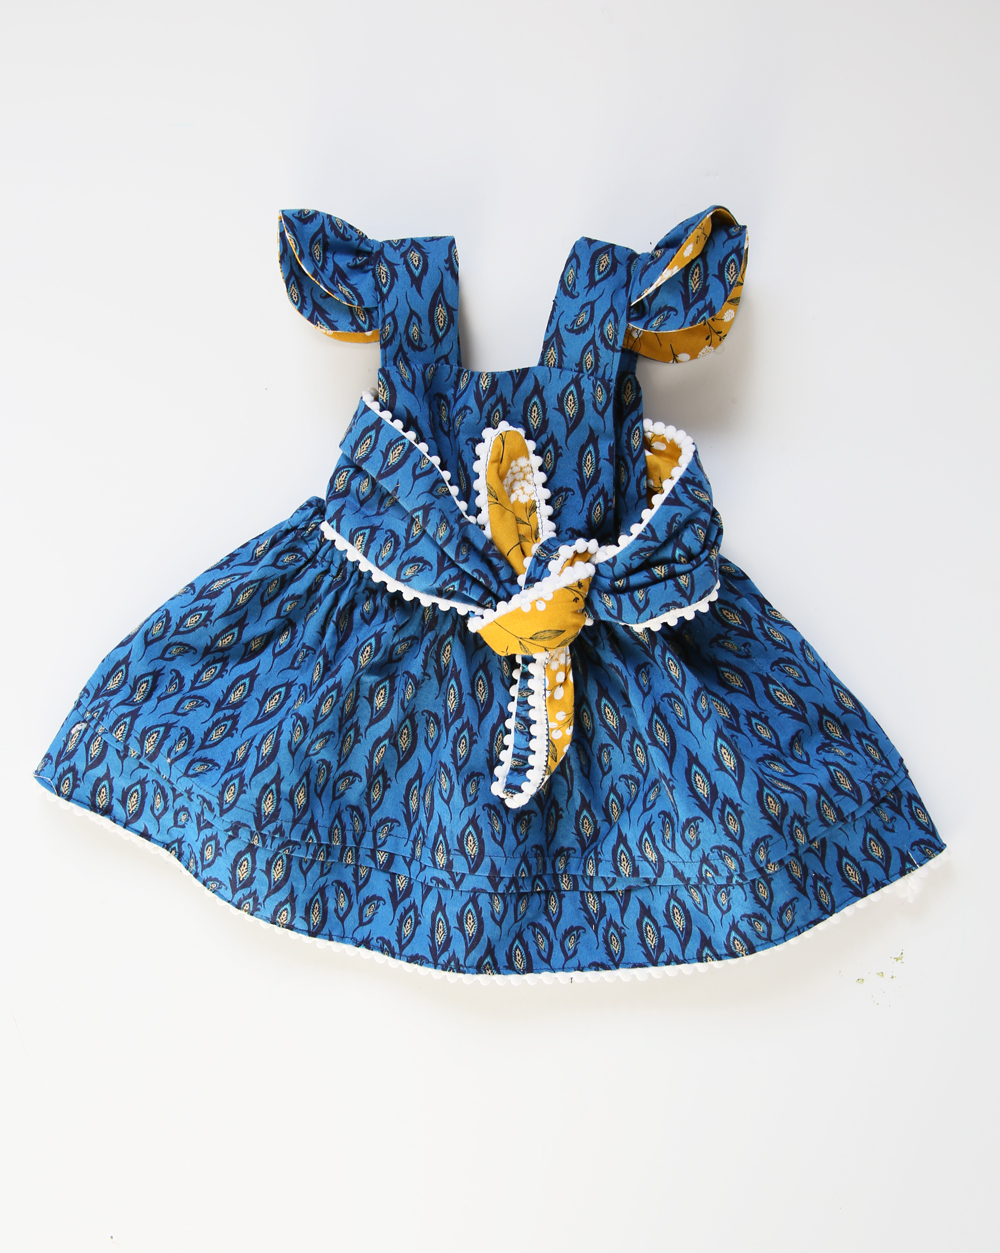 Paisley Blue and Gold Dress by Jessica Quirk